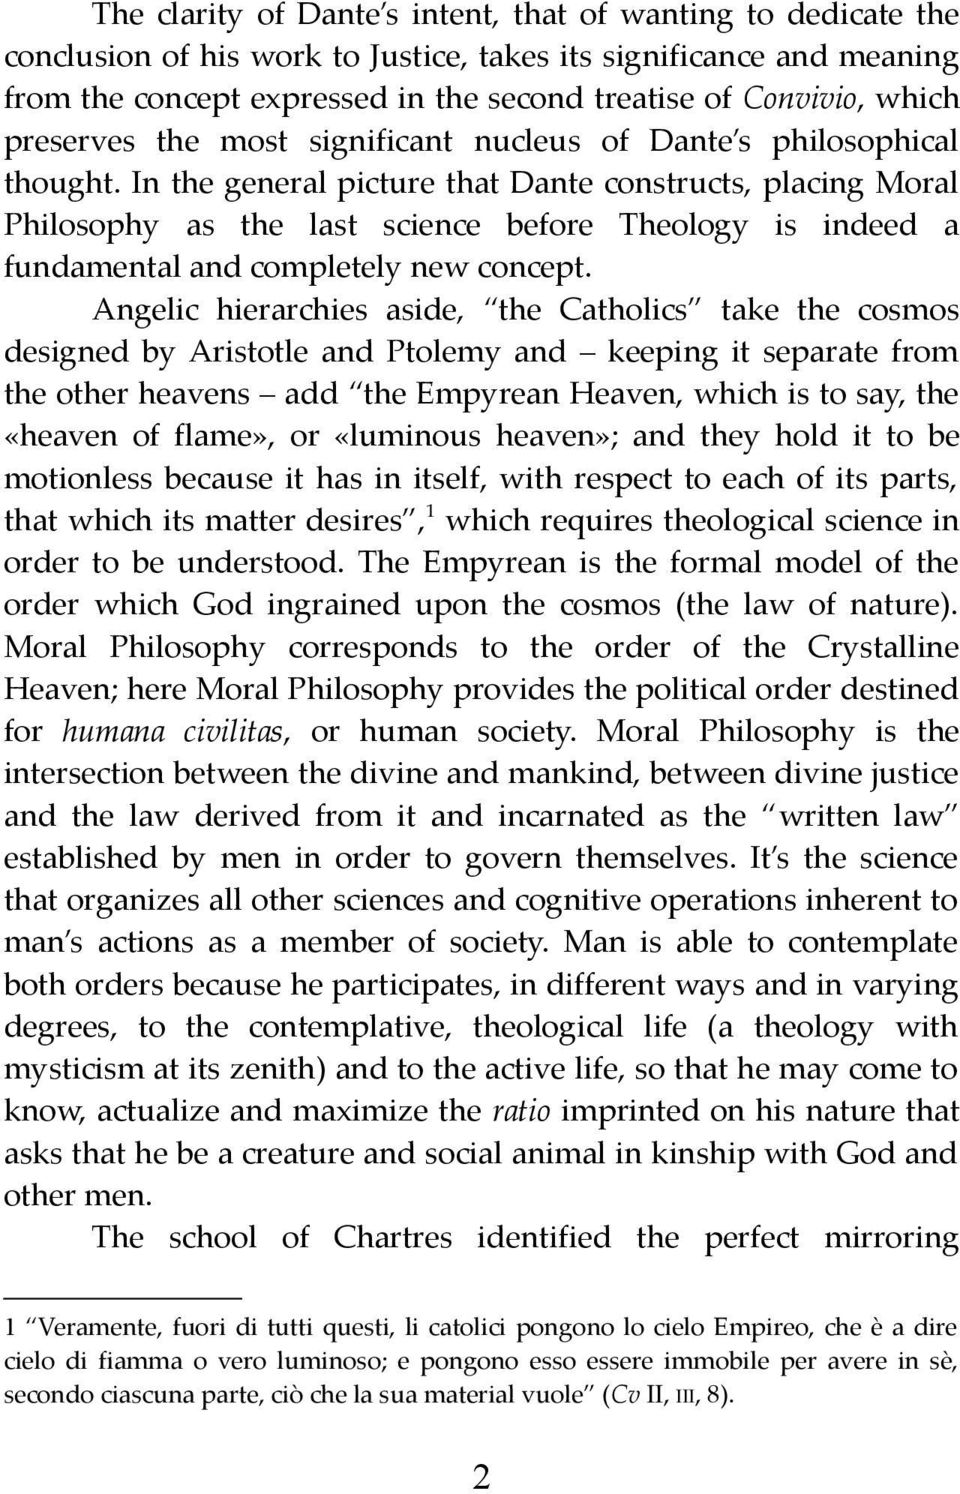 In the general picture that Dante constructs, placing Moral Philosophy as the last science before Theology is indeed a fundamental and completely new concept.